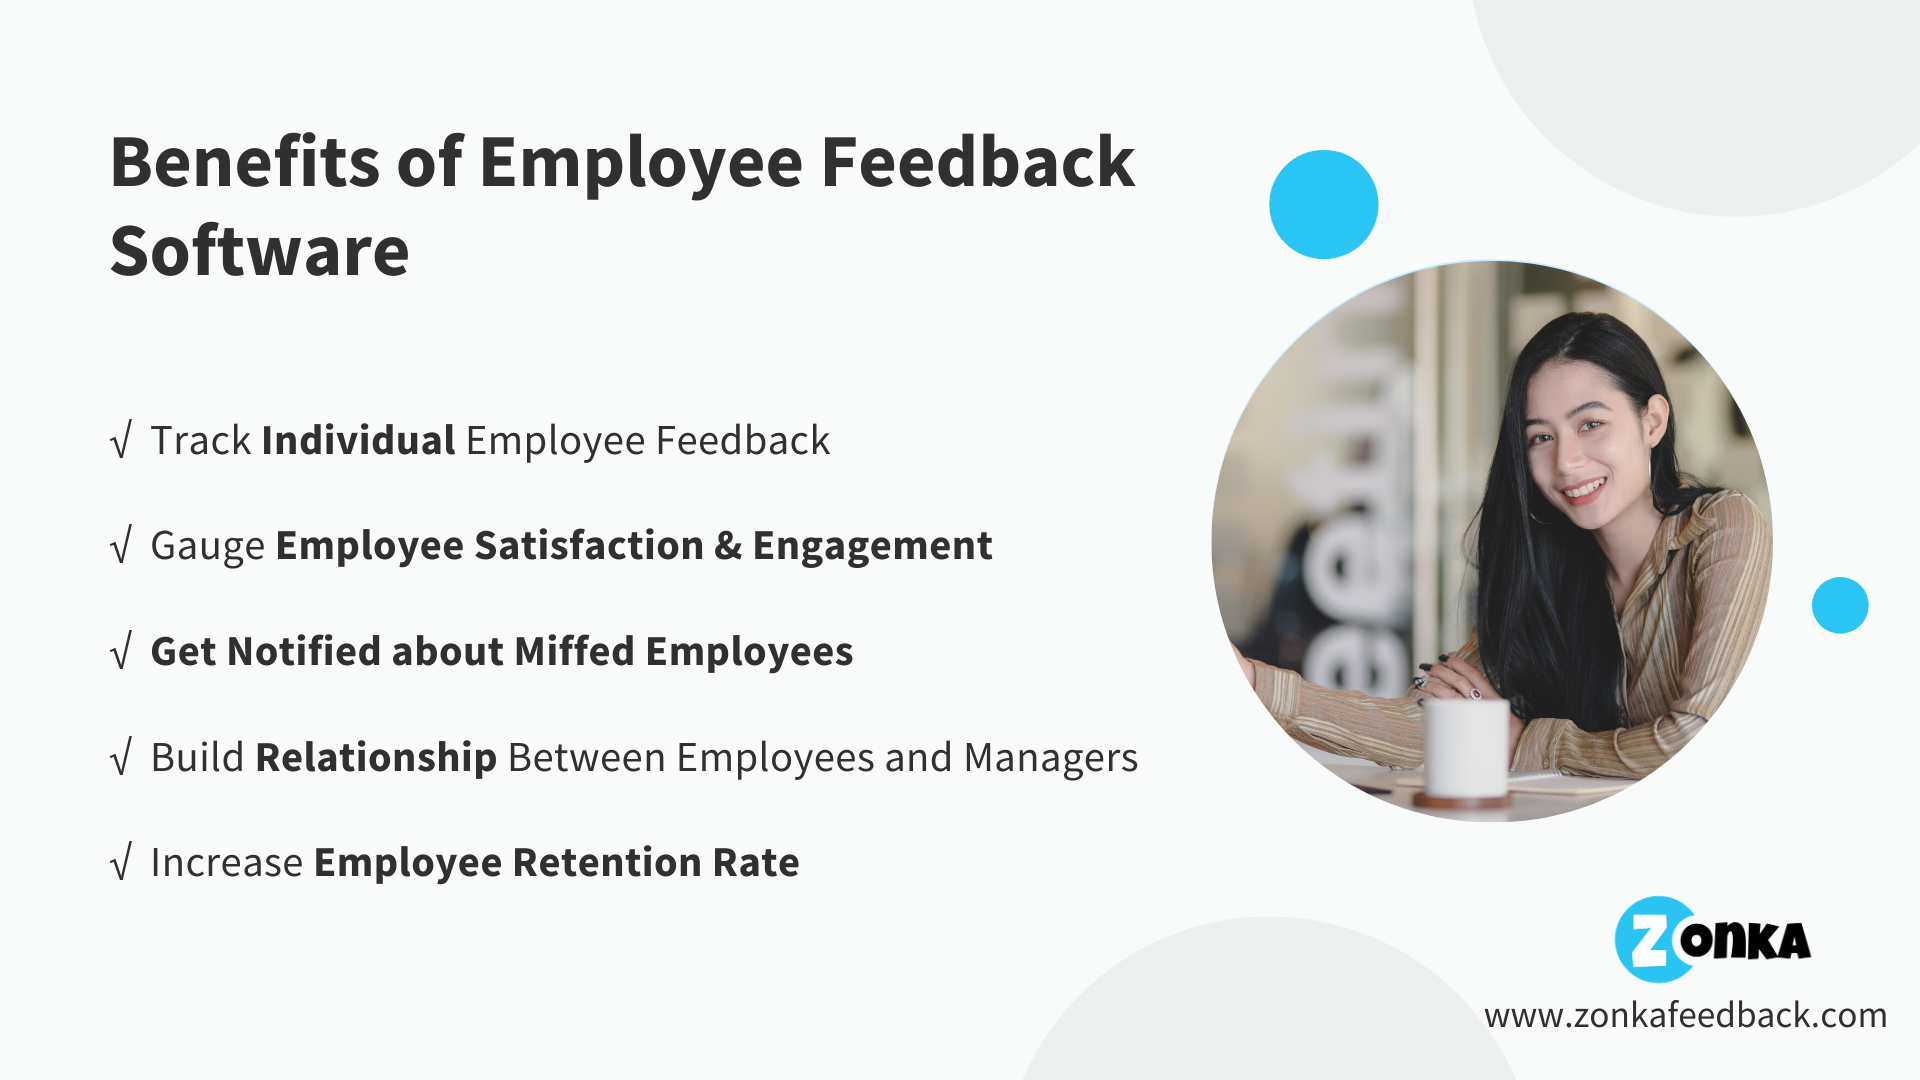 benefits-of-employee-feedback-software